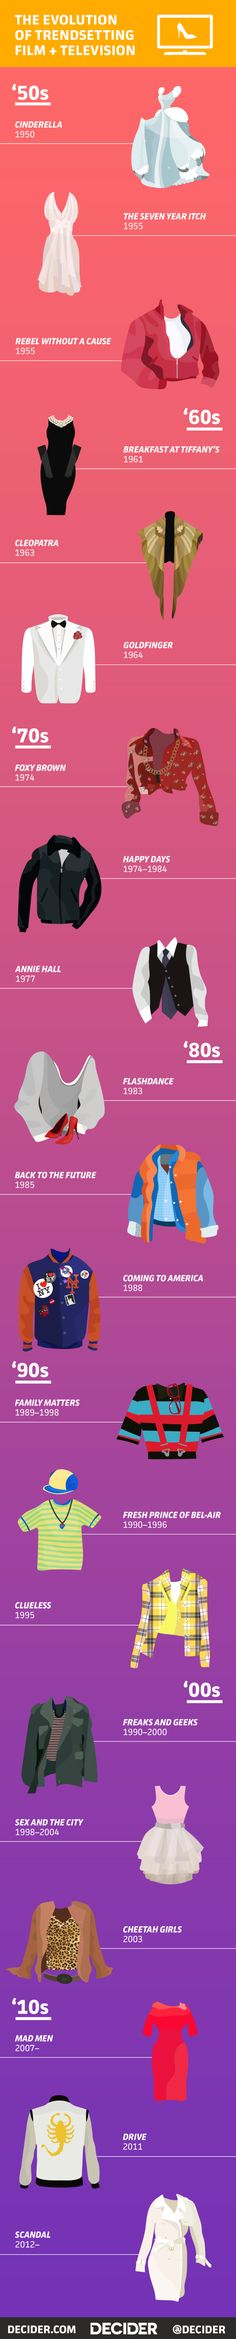 Timeline of the tv and film iconic fashion moments